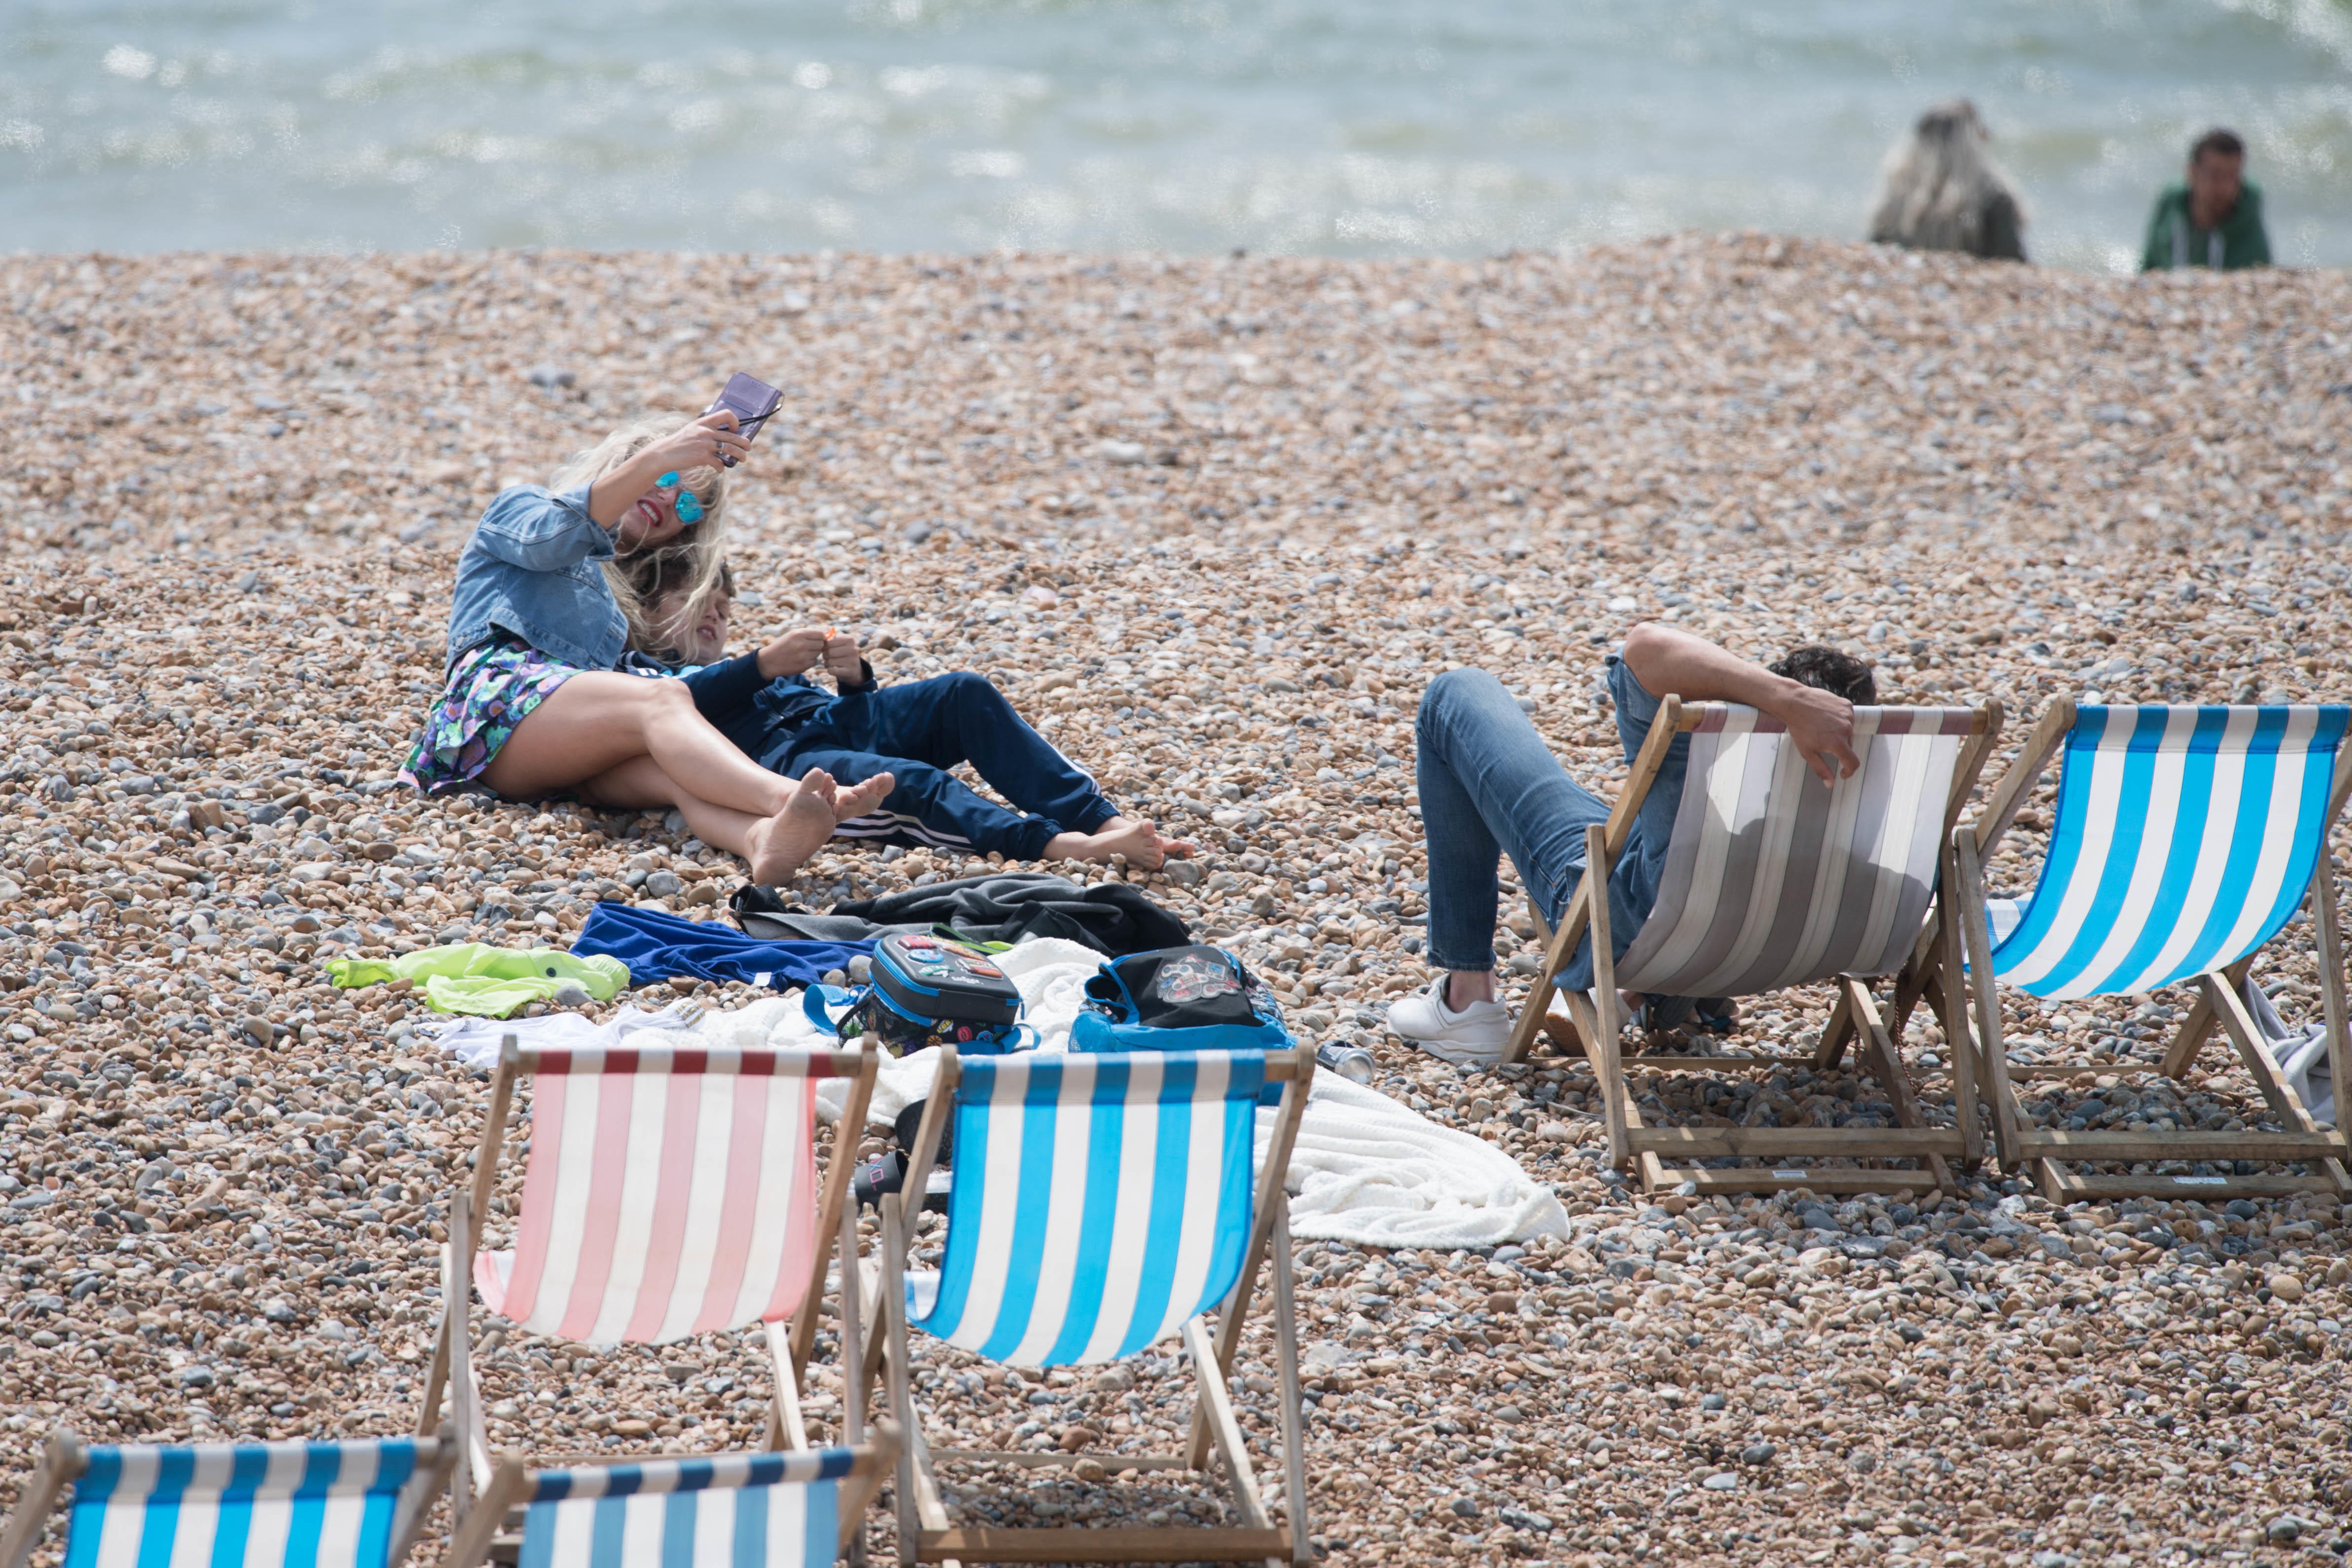 Visitors to Brighton beach in East Sussex take a selfie photograph today as the UK continues in lockdown to help curb the spread of the coronavirus. PA Photo. Picture date: Sunday May 17, 2020. See PA story HEALTH Coronavirus. Photo credit should read: Stefan Rousseau/PA Wire